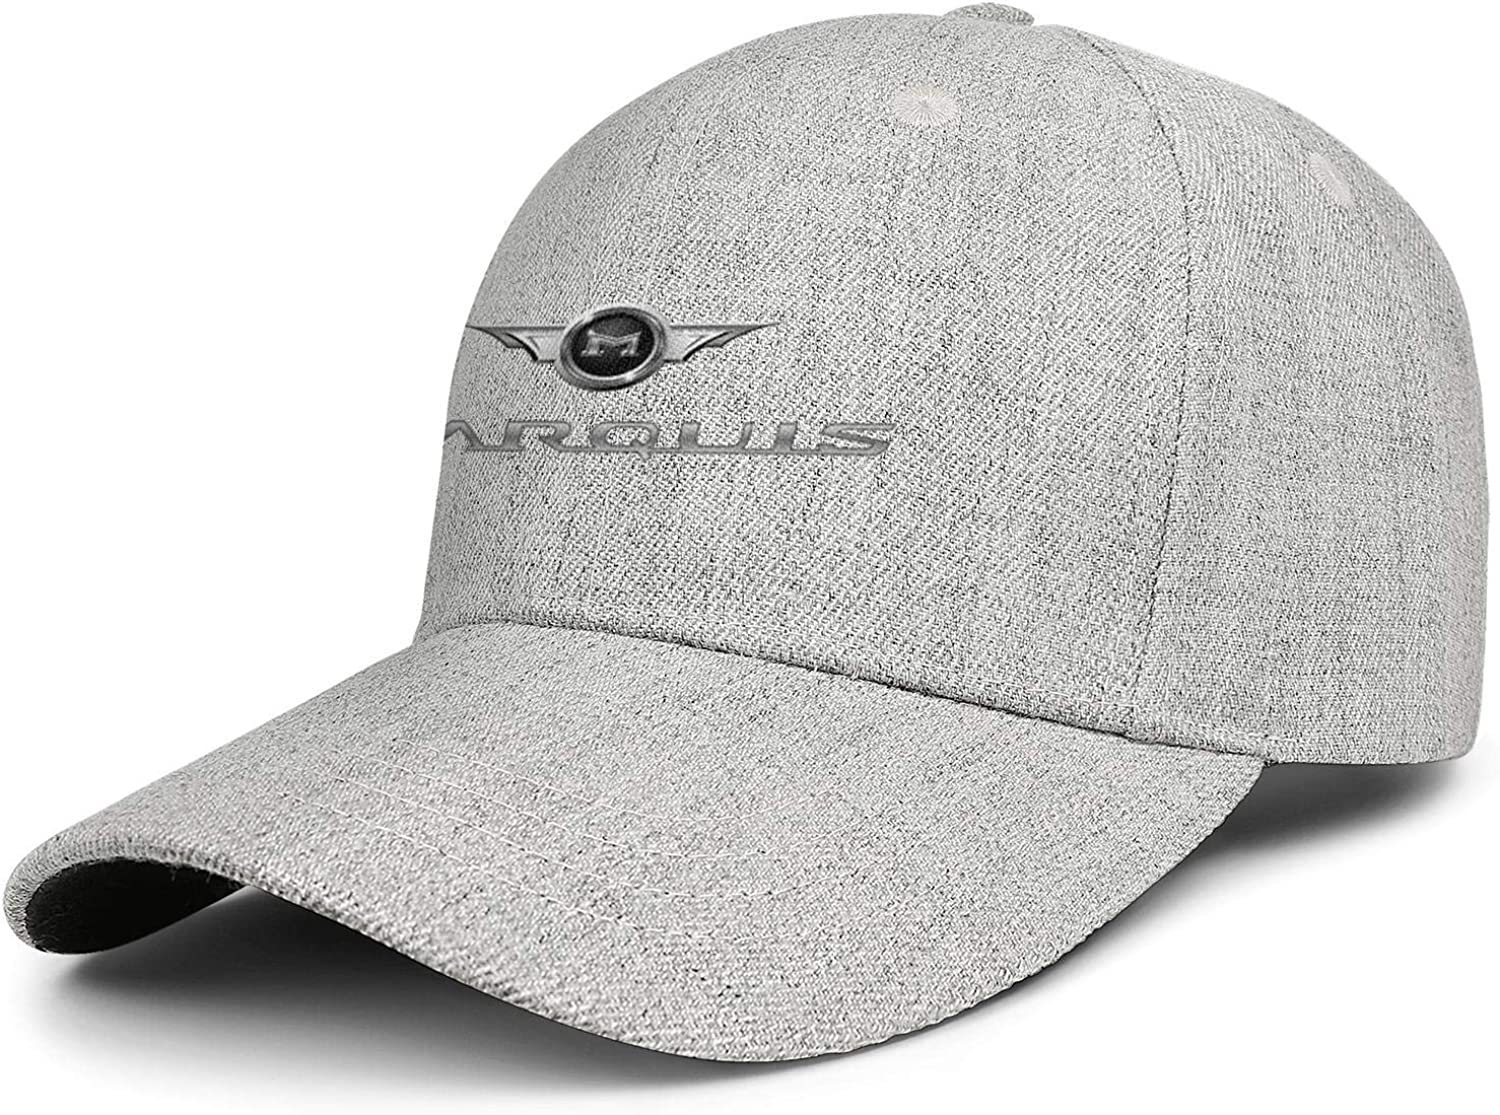 LiyeRRy Marquis-Yachts Adjustable Baseball Cap Wool Strapback Dad Hat Cool Unconstructed Trucker Hat